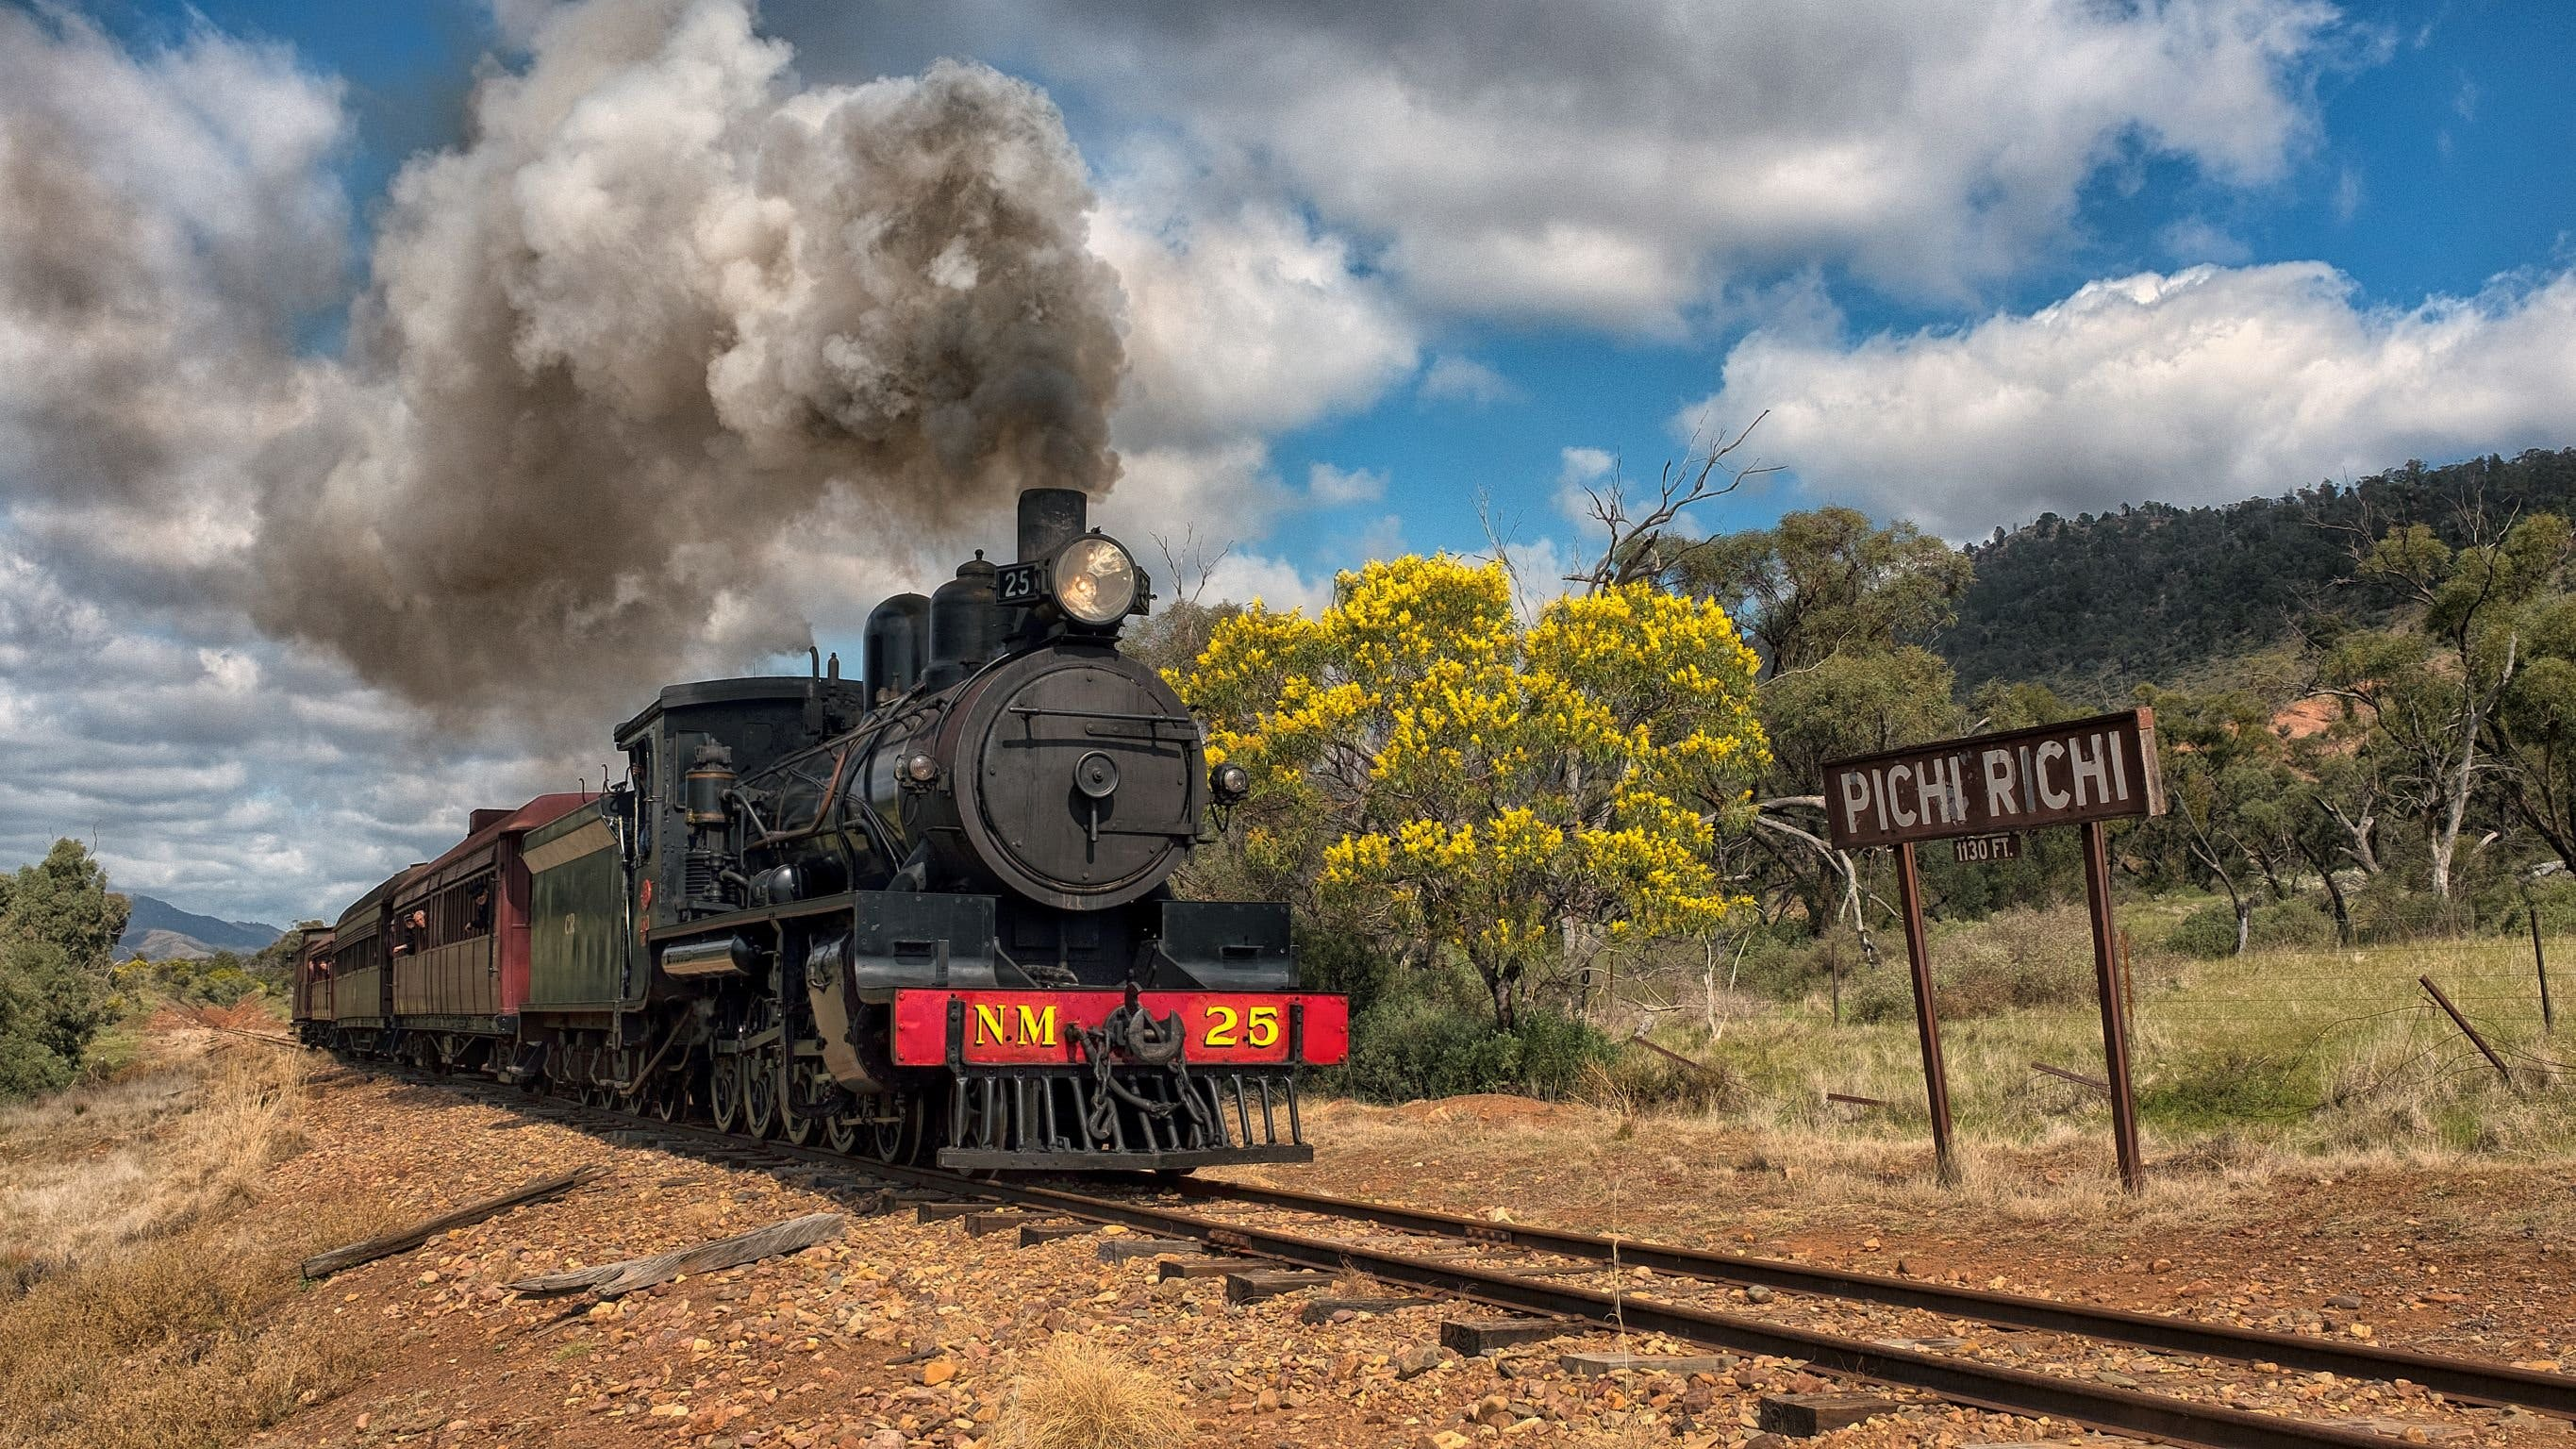 Pichi Richi Railway - Accommodation Sydney